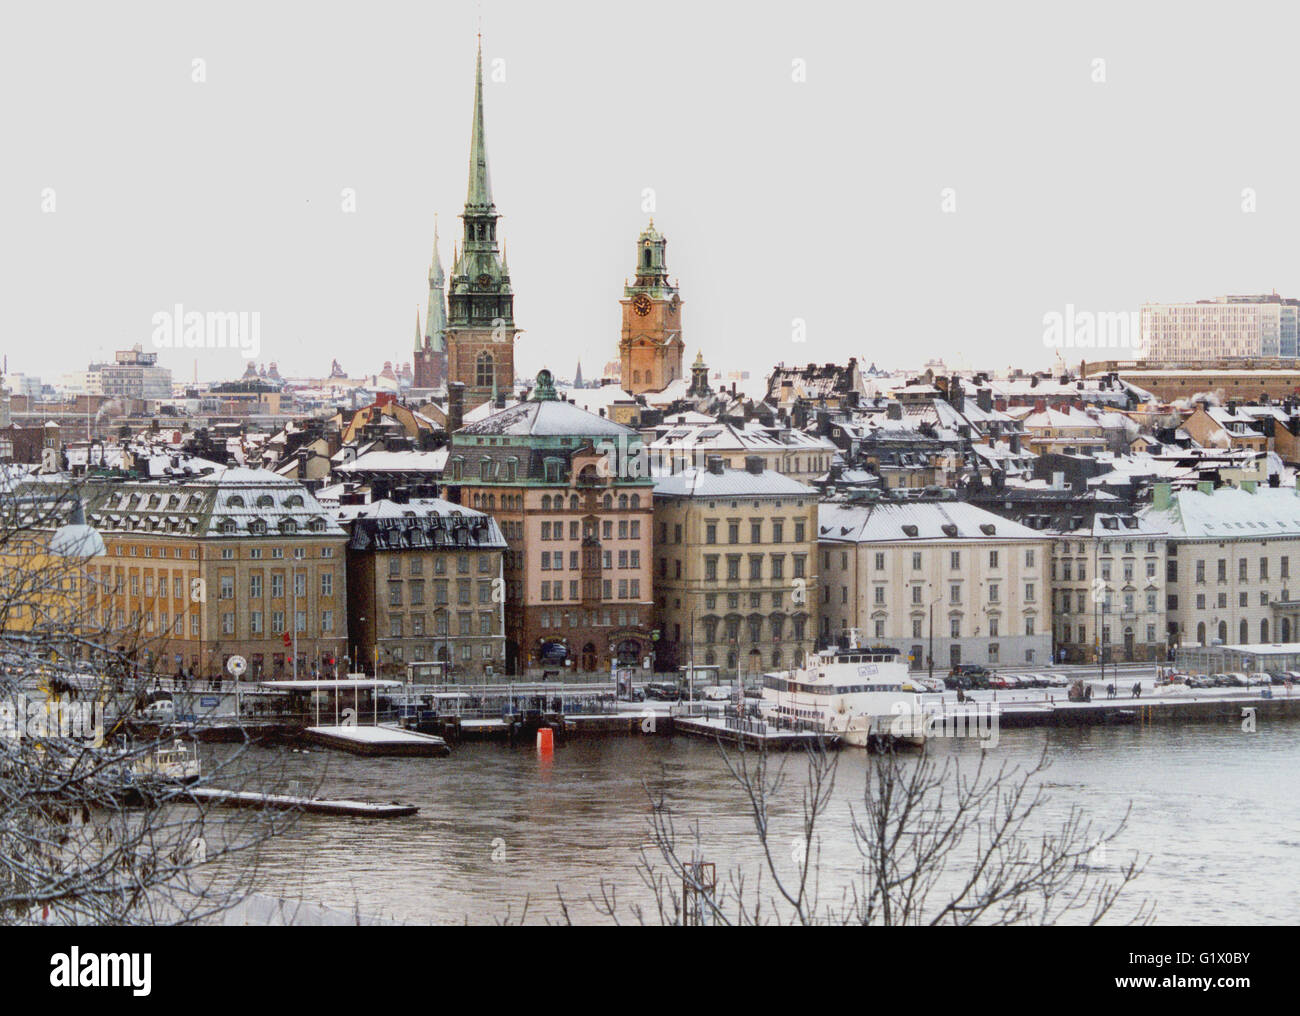 OLD TOWN with churches on a cold winter day - Stock Image